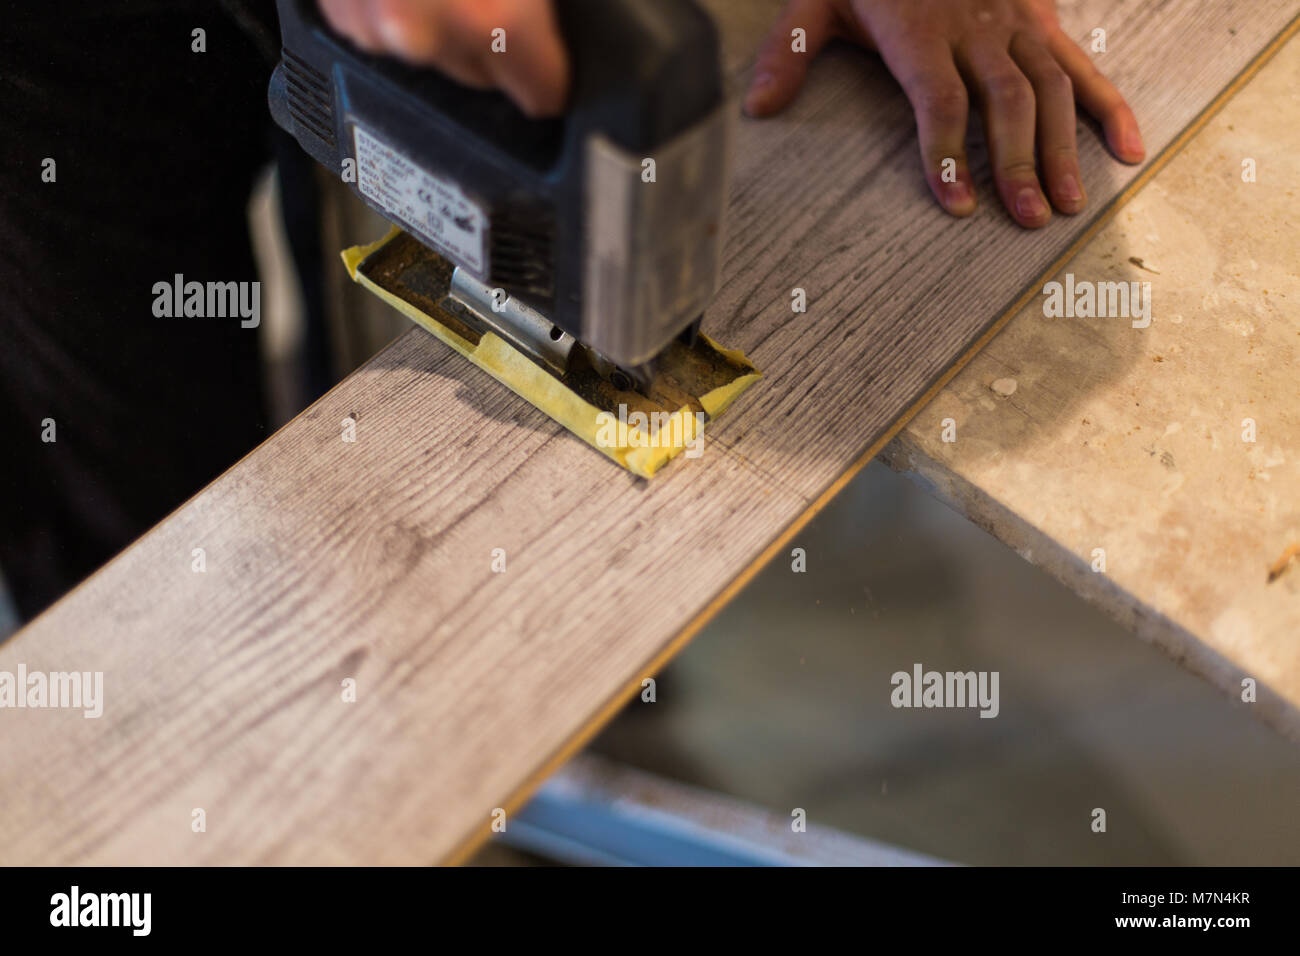 Contractor Cutting Laminate Flooring Lengthwise Workers Cutlaminate With Electric Saw